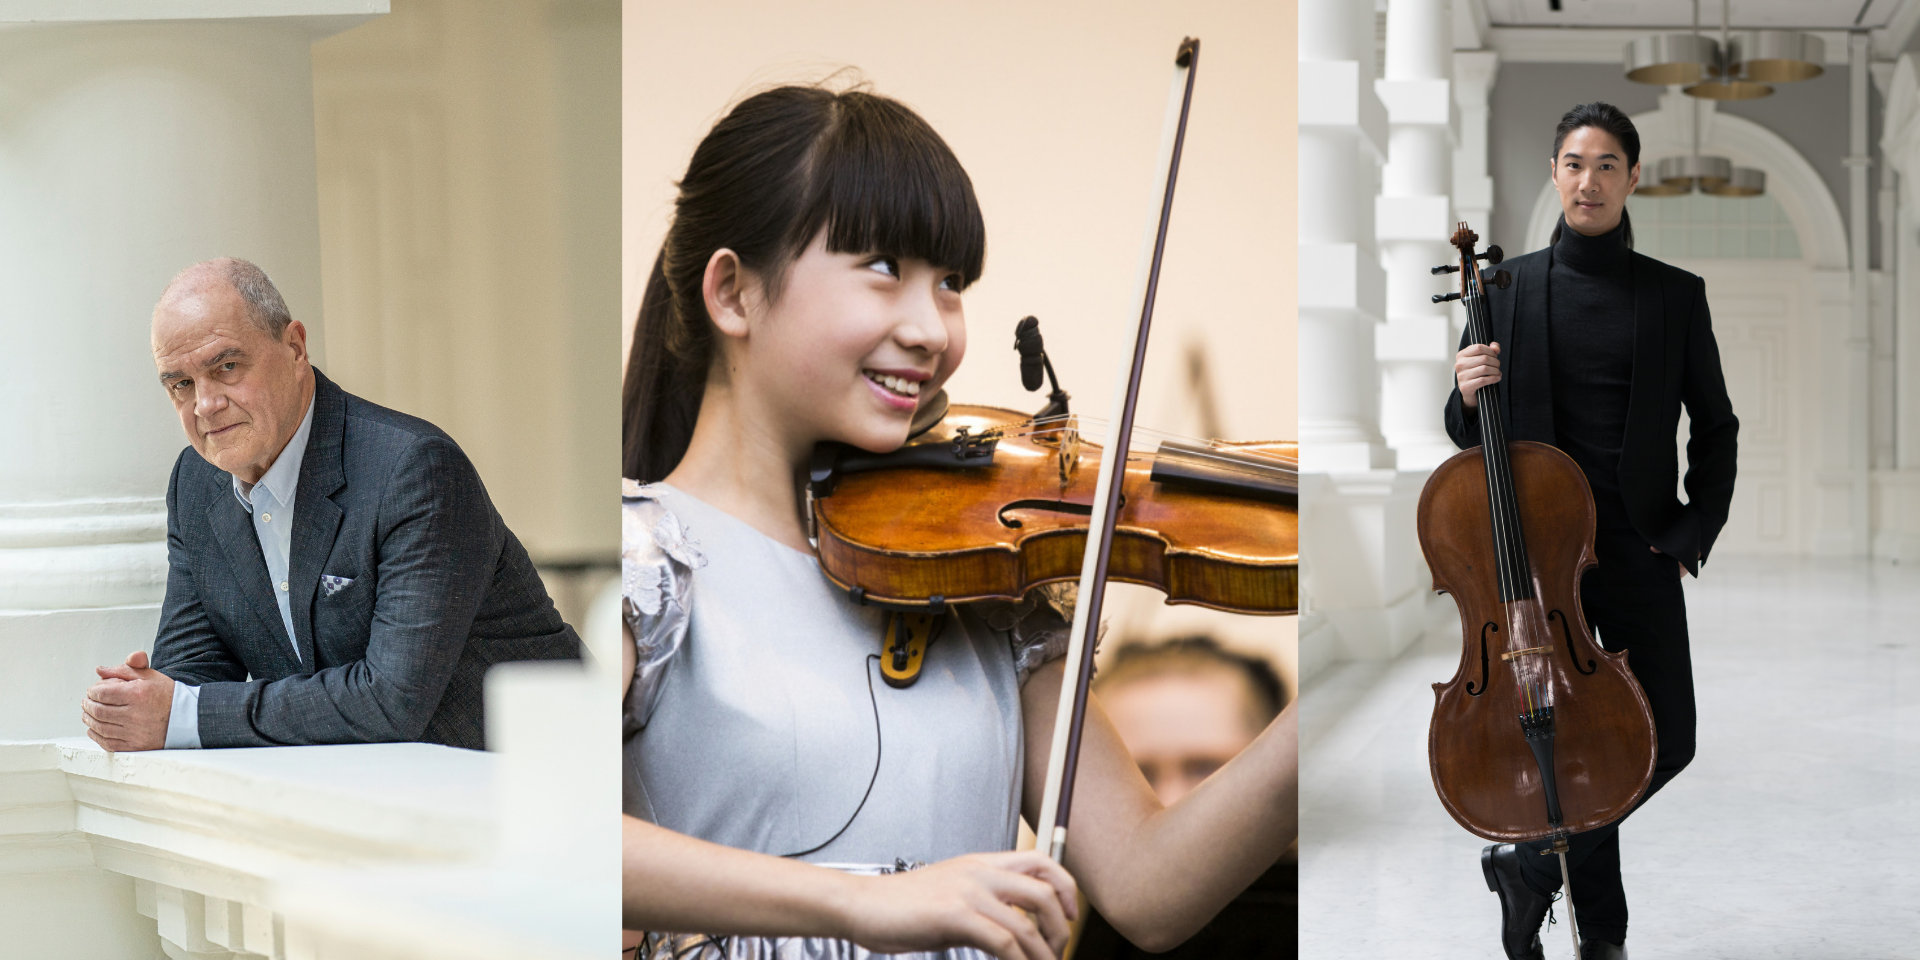 SSO announce new online concerts featuring Chief Conductor Hans Graf, violinist Chloe Chua, and cellist Ng Pei-Sian